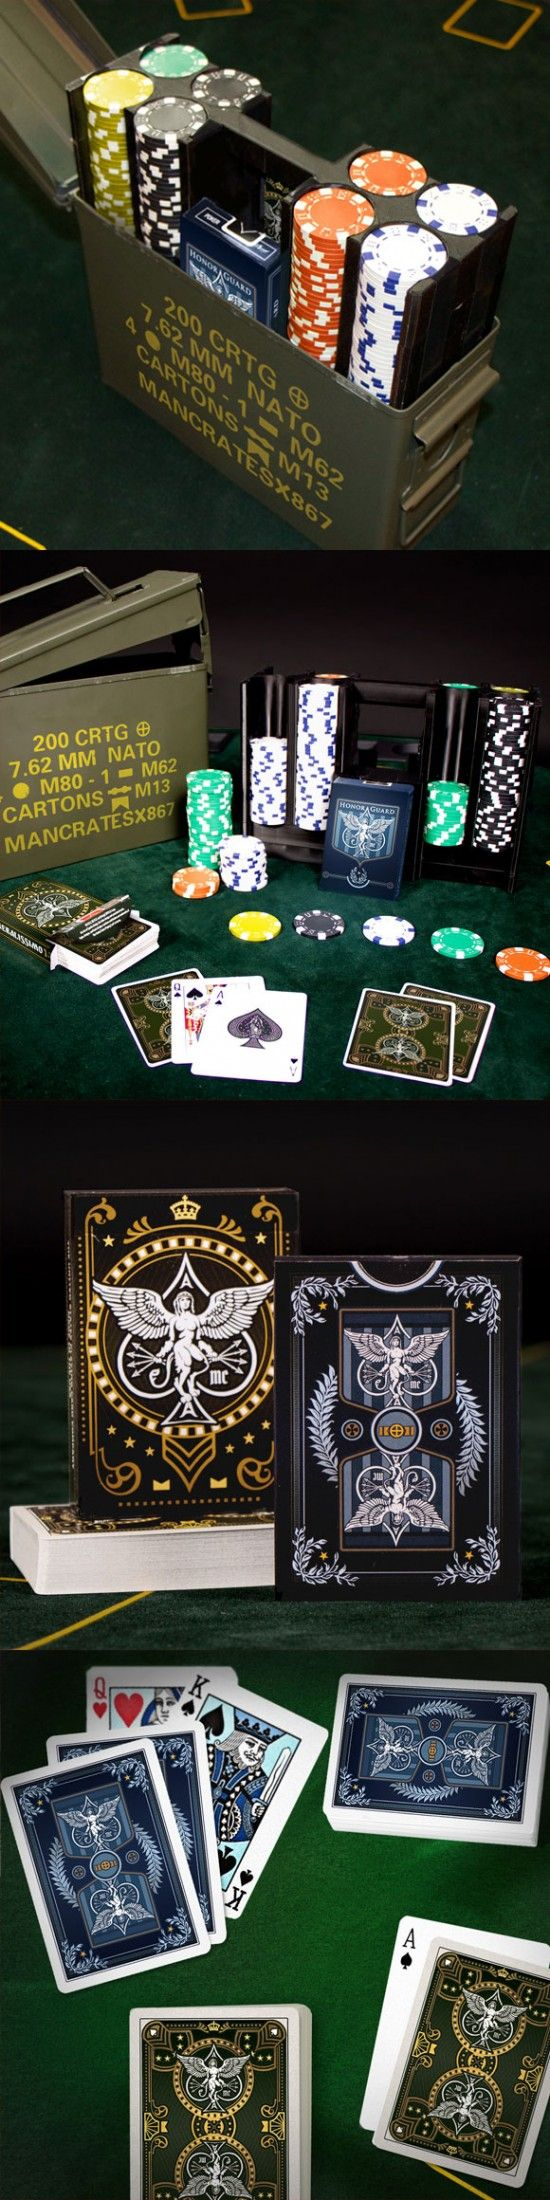 Ammo Can Poker Set. Great gift for Father's Day | ManCrates